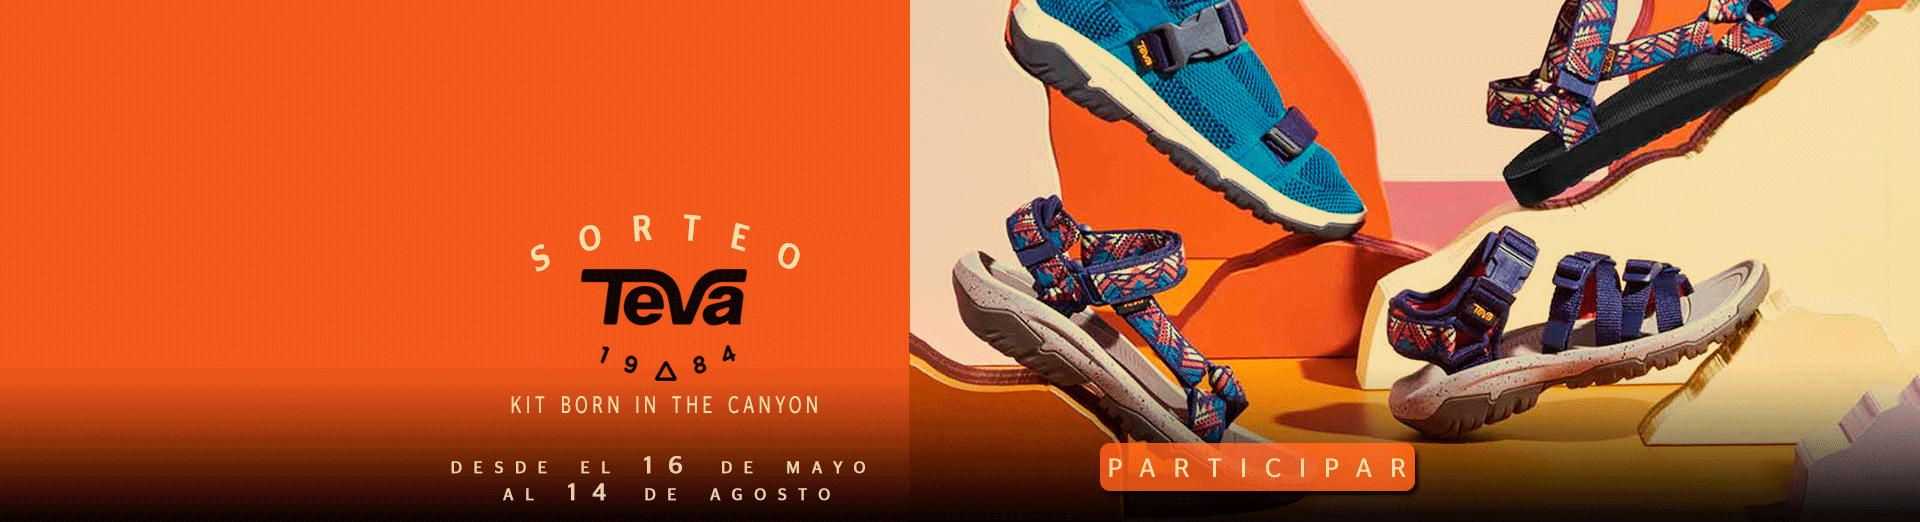 "SORTEO TEVA ""KIT BORN IN THE CANYON"""